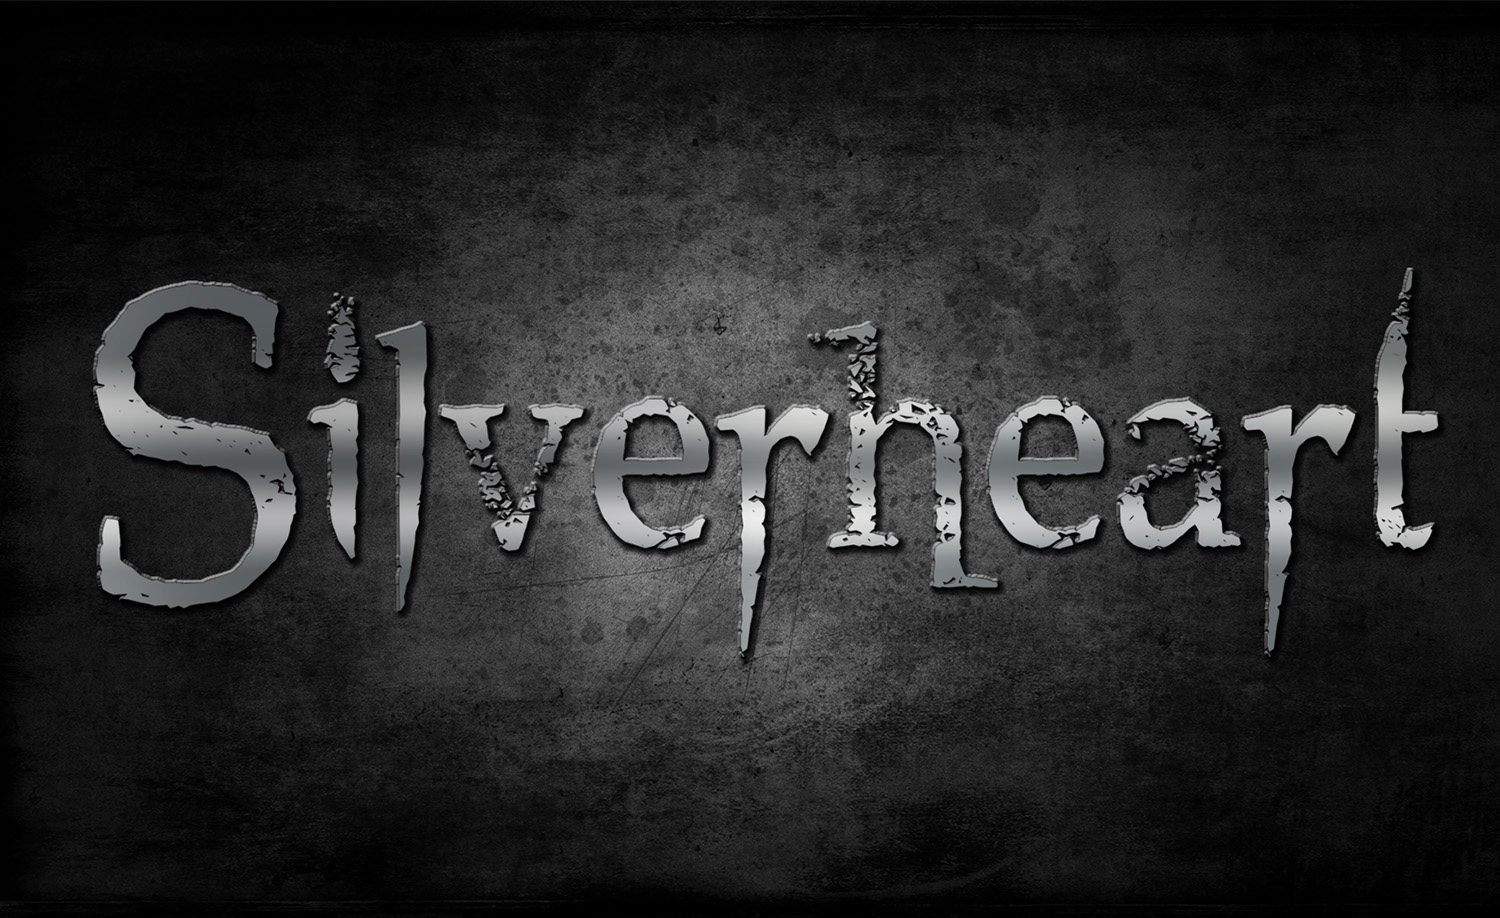 Silverheart DarkAwards 2019